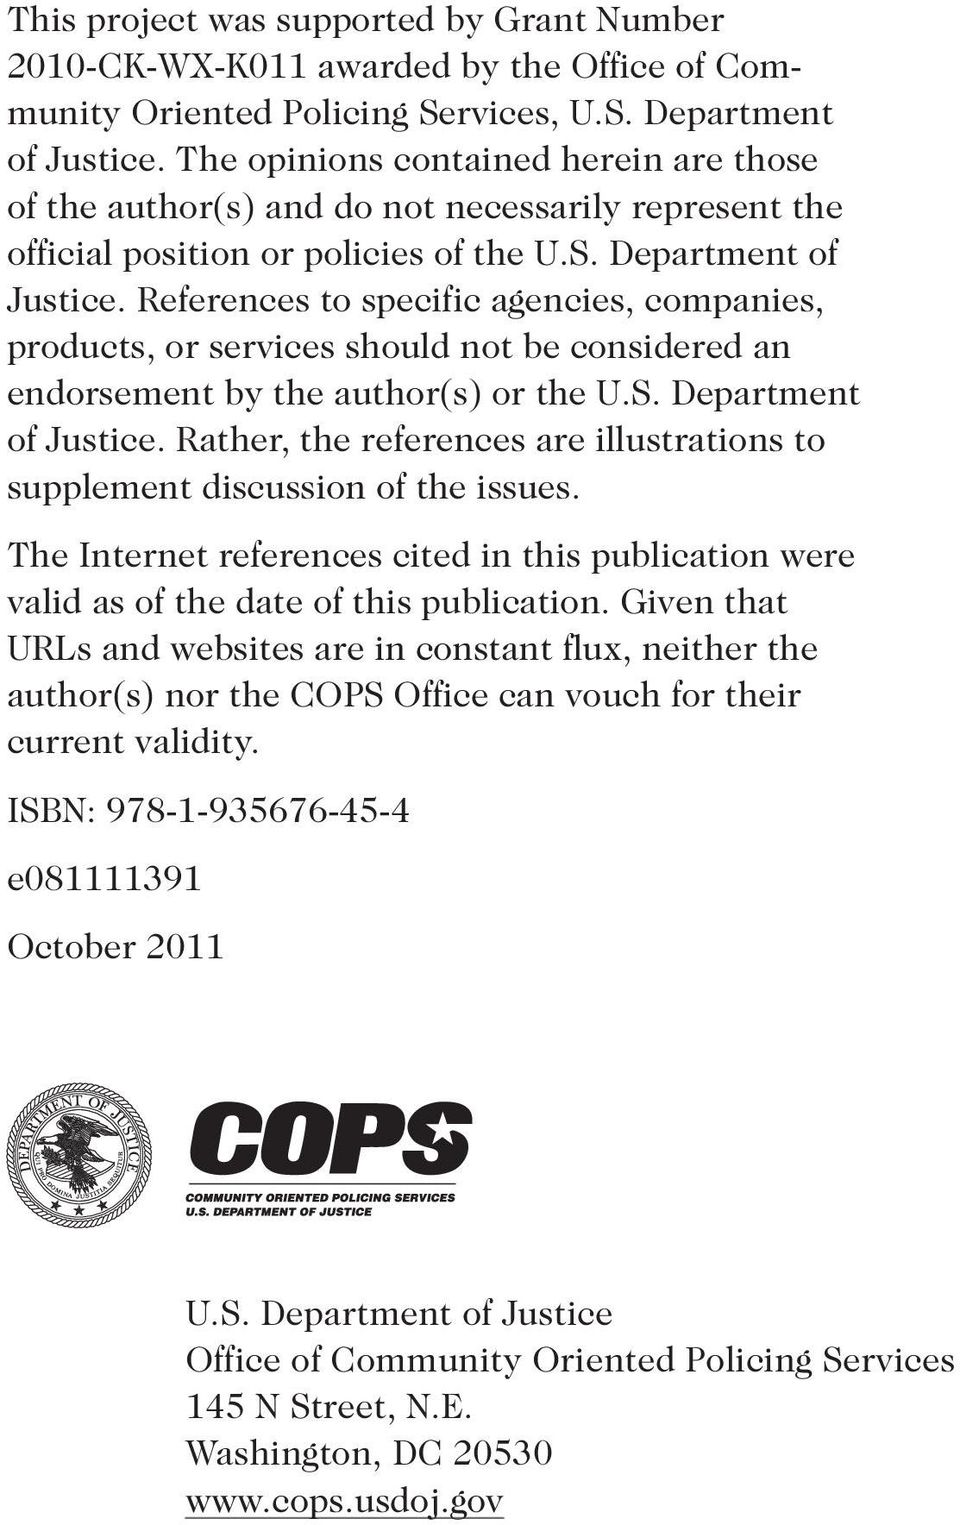 References to specific agencies, companies, products, or services should not be considered an endorsement by the author(s) or the U.S. Department of Justice.